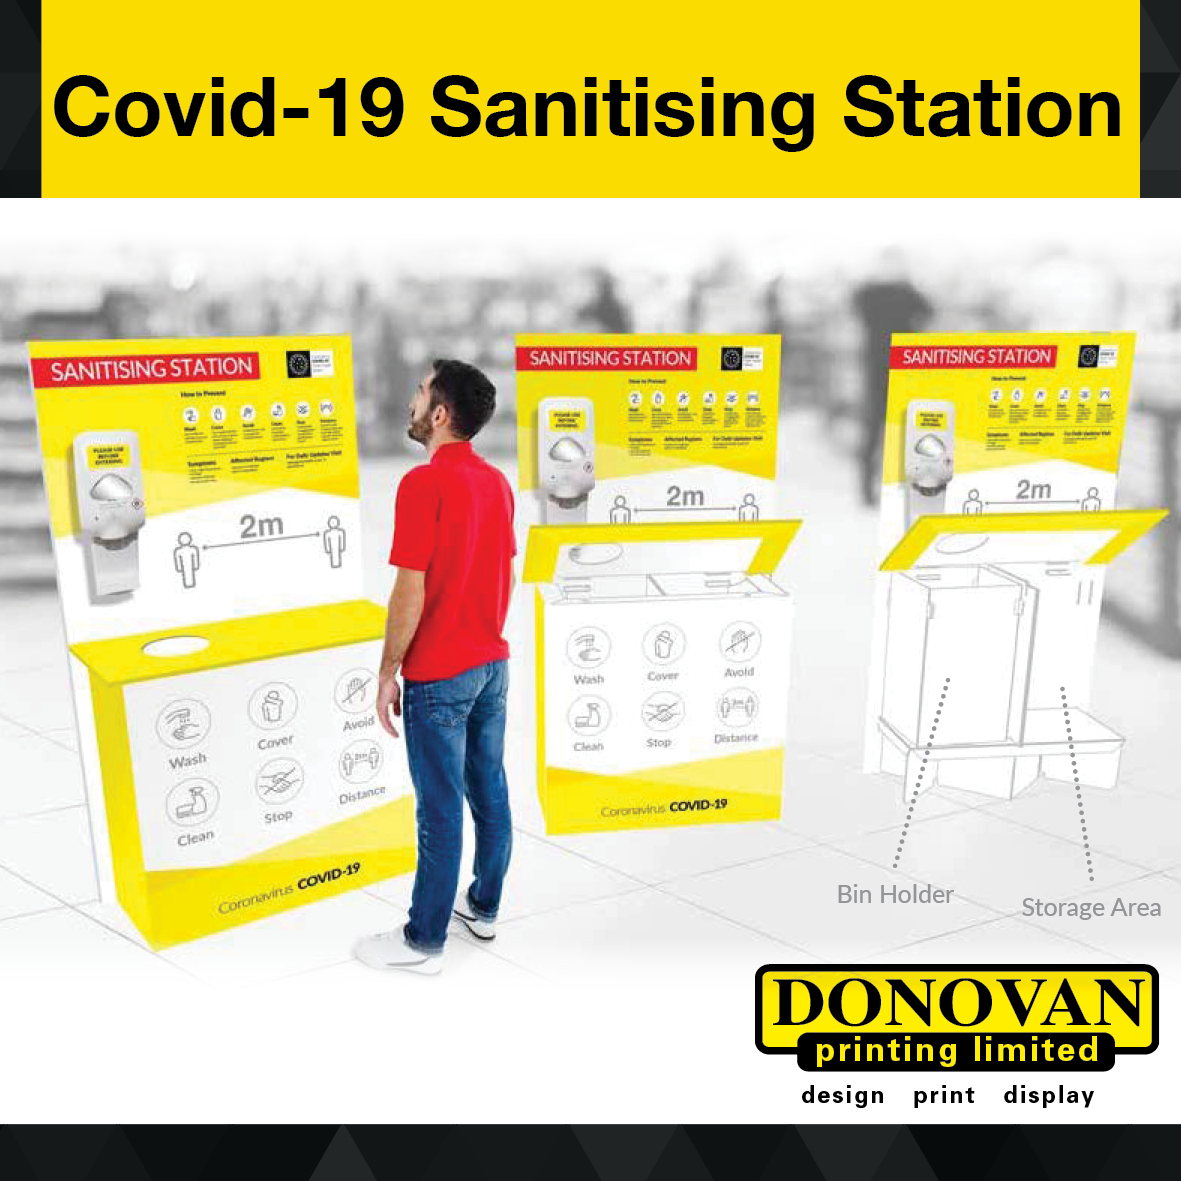 Covid Sanitising Station Small Image